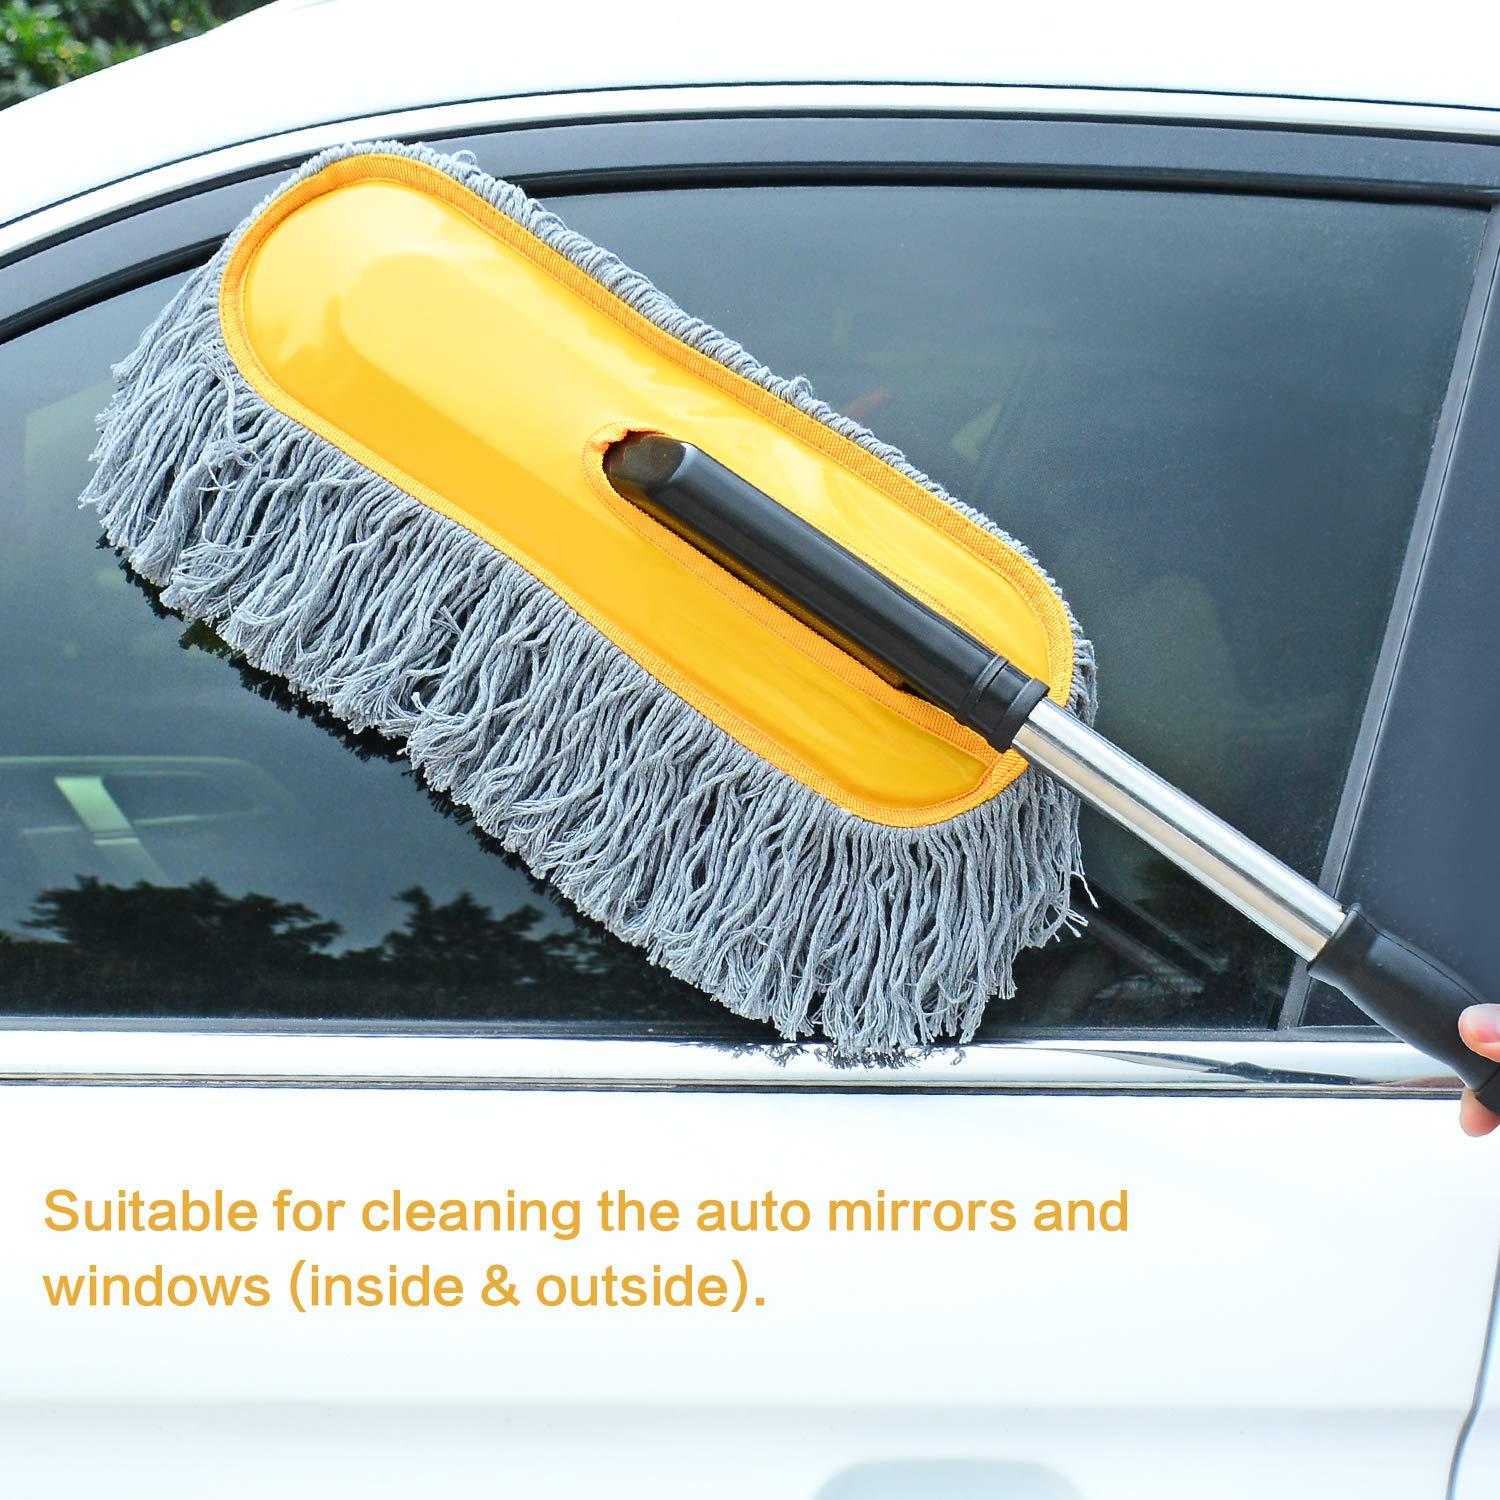 Happy Road Car Duster, Multipurpose Car Brush Duster - Quick & Easy Remove Dust and Pollen, Car Duster with Extendable Handle, Car Cleaning Duster for Interior Exterior Use - Lint Free - Scratch Free